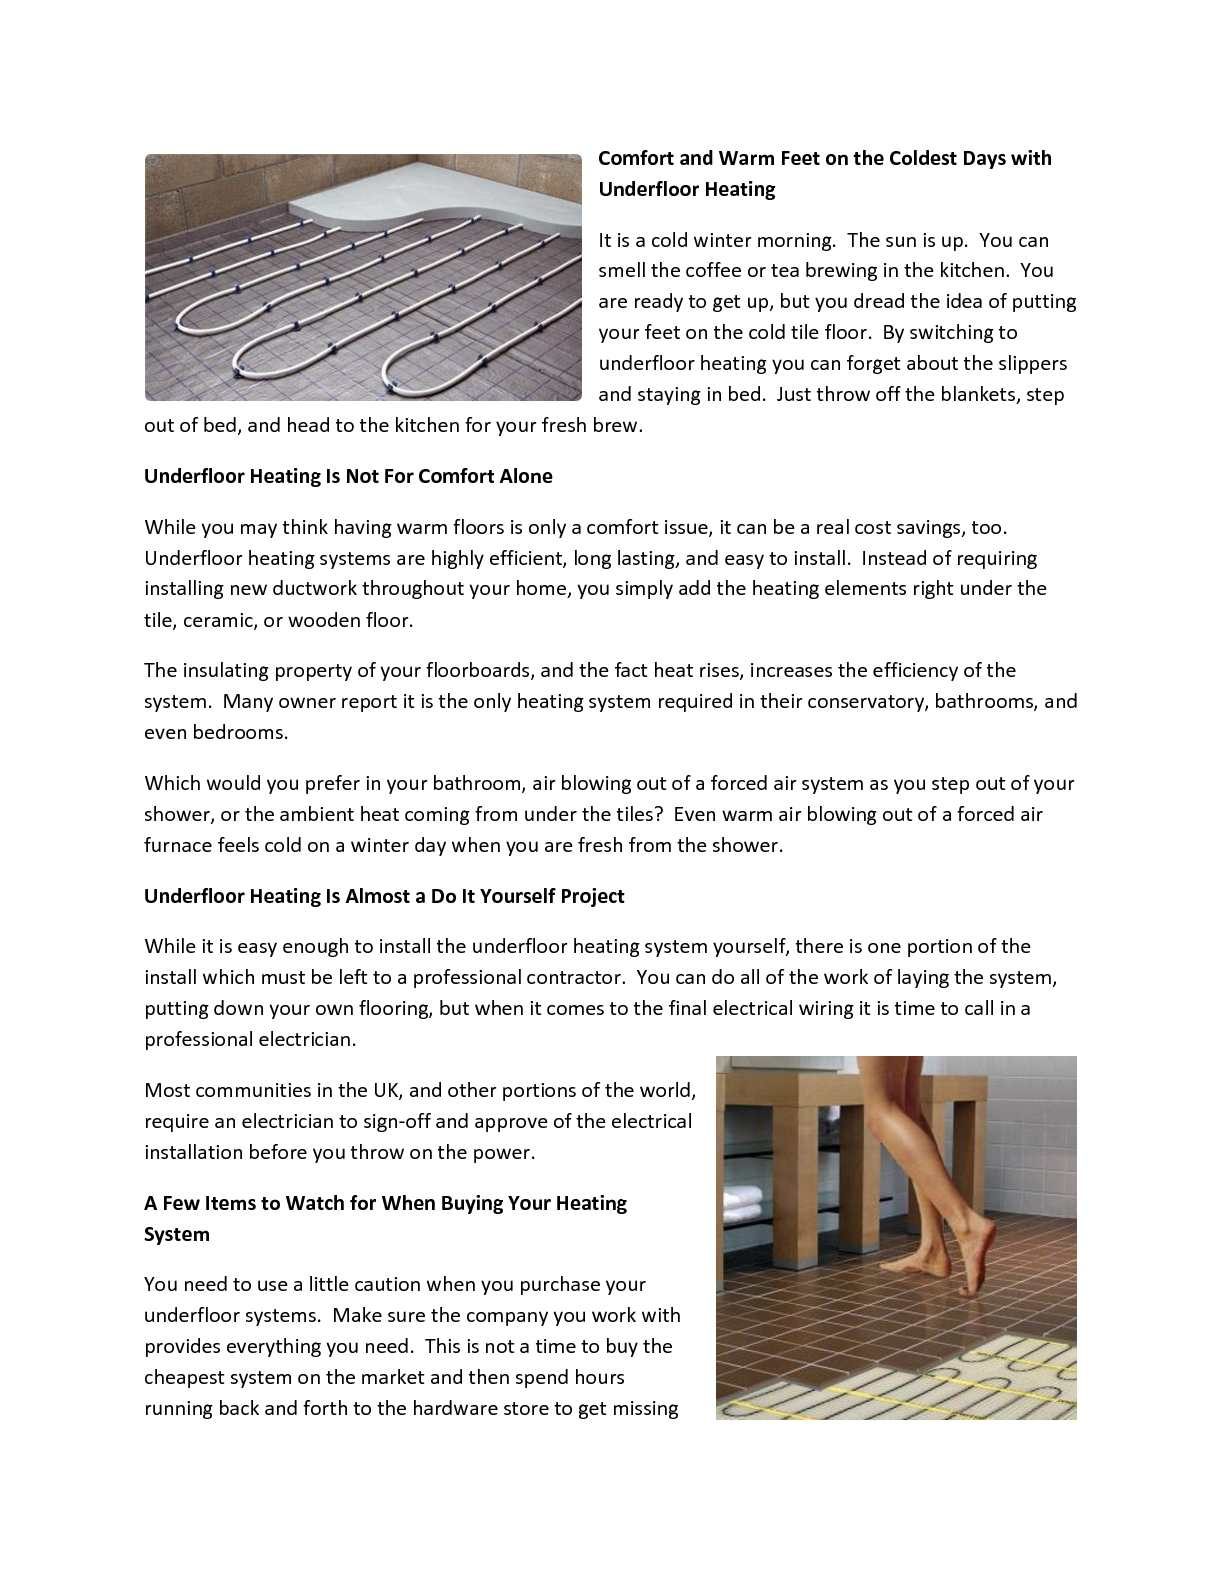 Calameo Providing Comfort And Warm Feet On The Coldest Days With Underfloor Heating